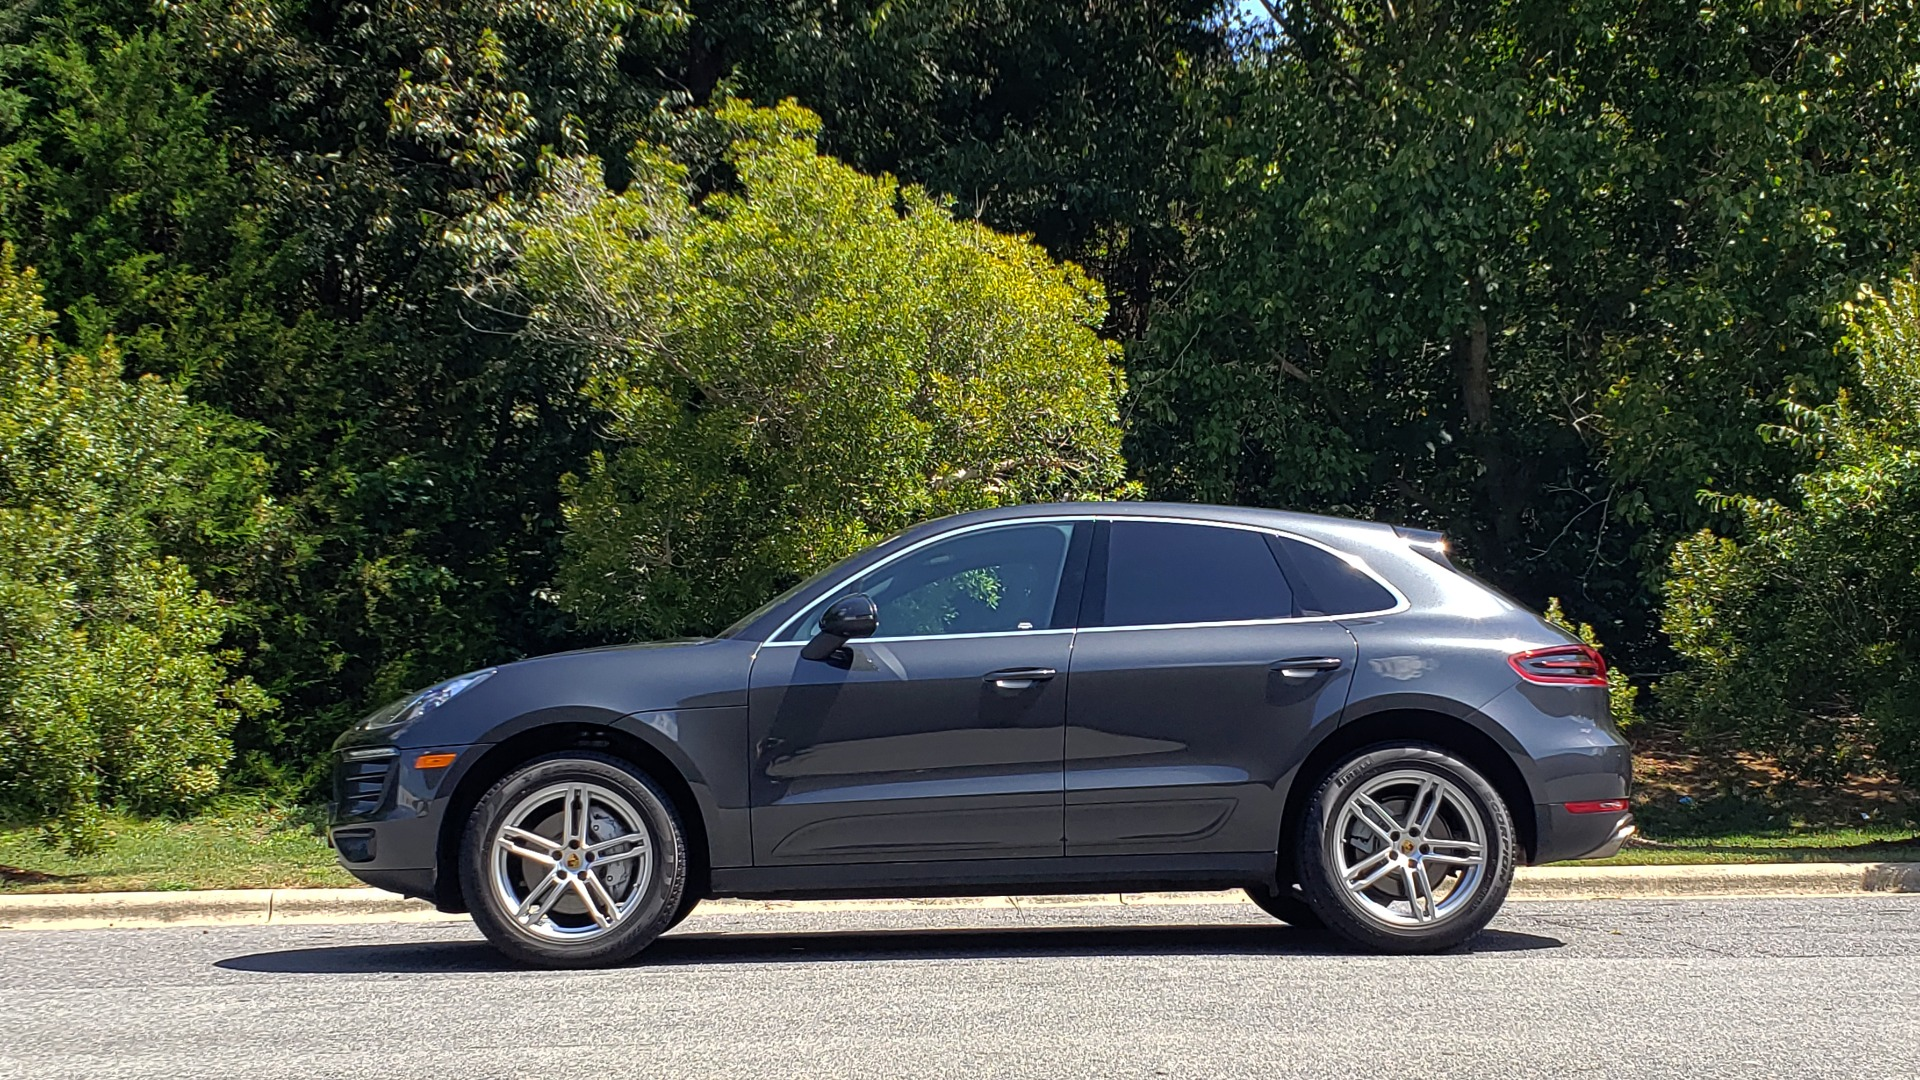 Used 2017 Porsche MACAN S PREMIUM PKG / NAV / BOSE / SUNROOF / REARVIEW for sale Sold at Formula Imports in Charlotte NC 28227 7